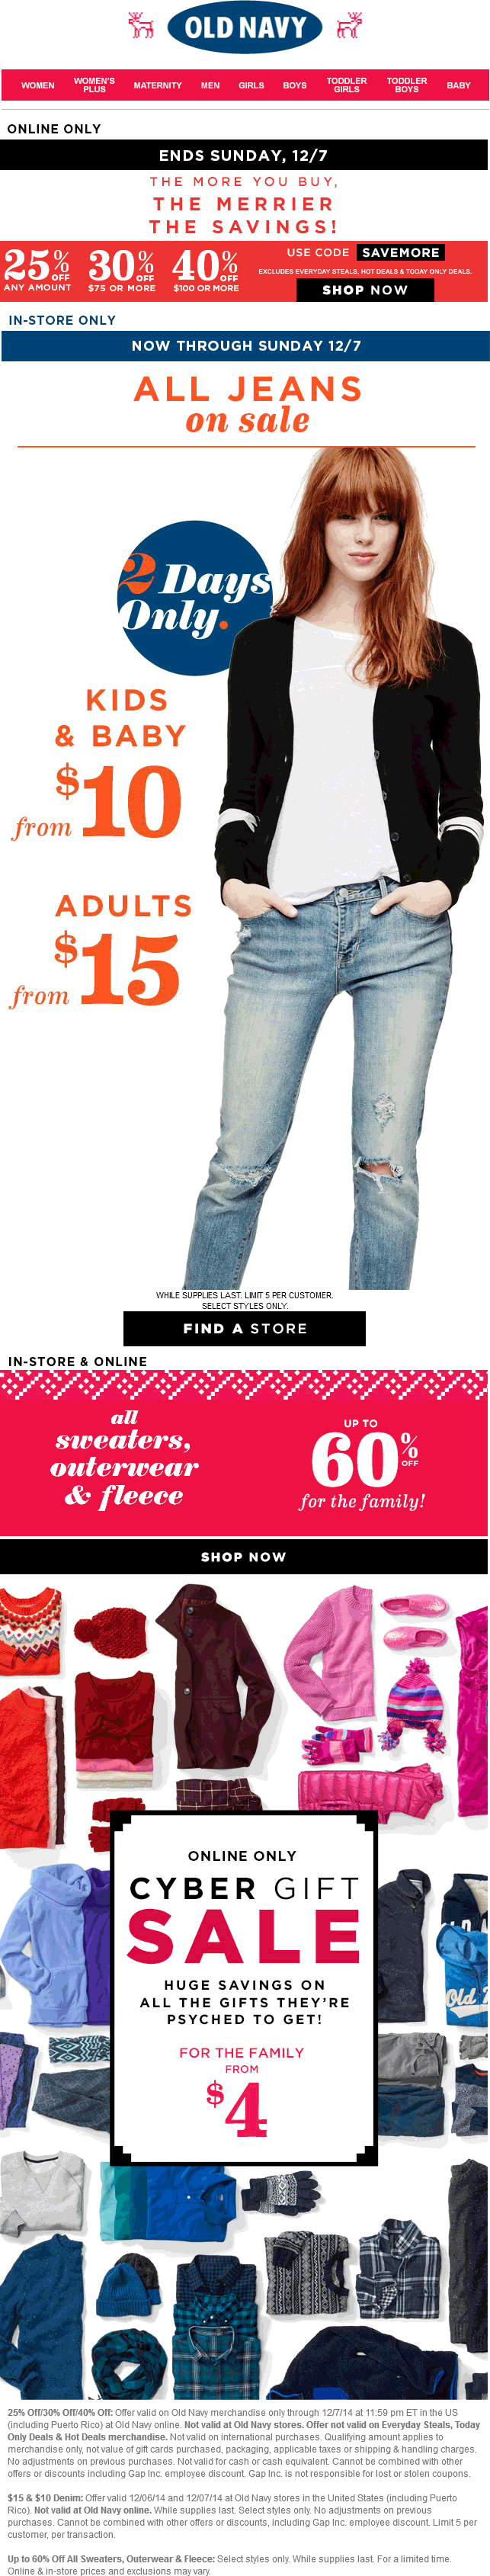 Old Navy Coupon July 2017 25-40% off everything & more online at Old Navy via promo code SAVEMORE